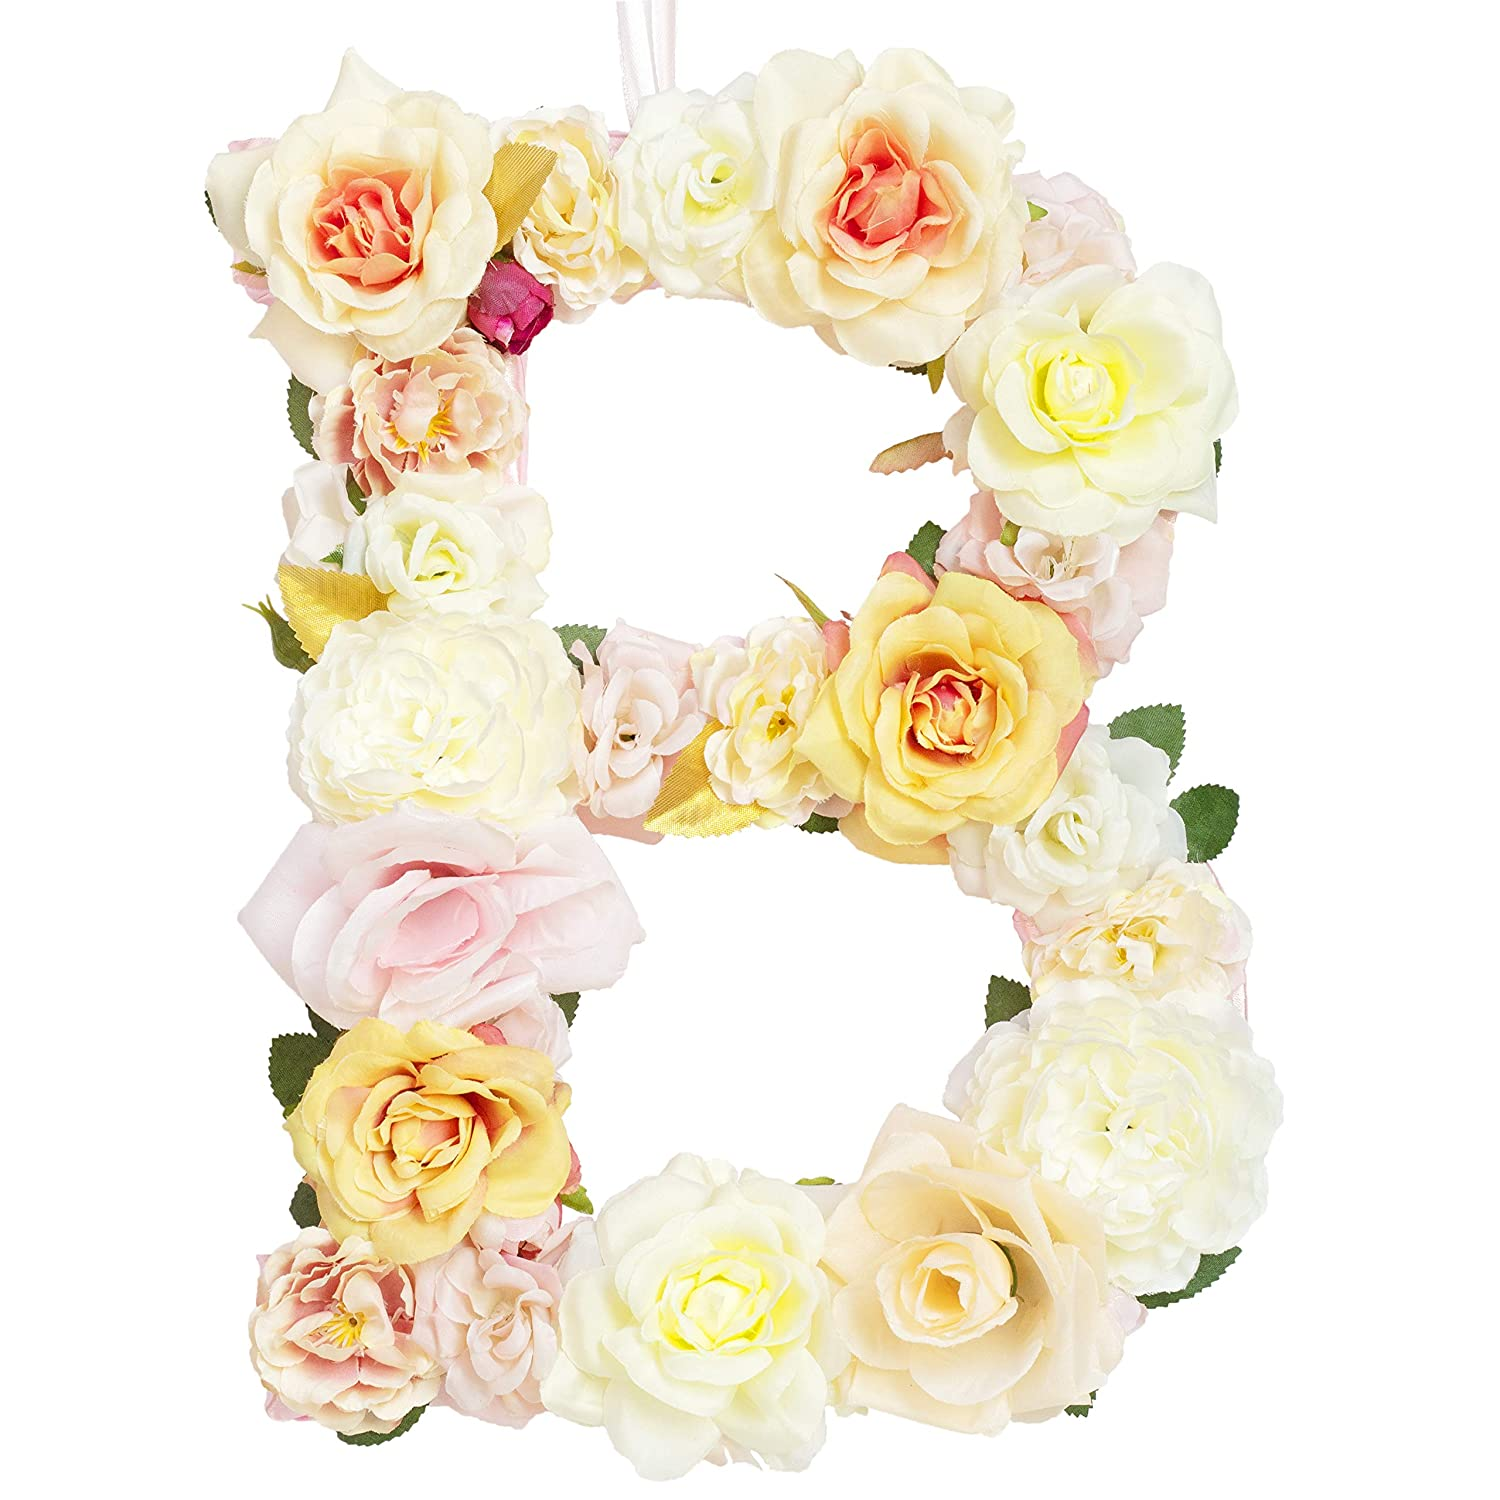 Jonhans8 Artificial Flower Letters Hanging Ornaments - 26 Letters (Champagne Theme), 12.2x9.4x0.6in - for Wedding Centerpieces Anniversary Birthday Party Home Decorations